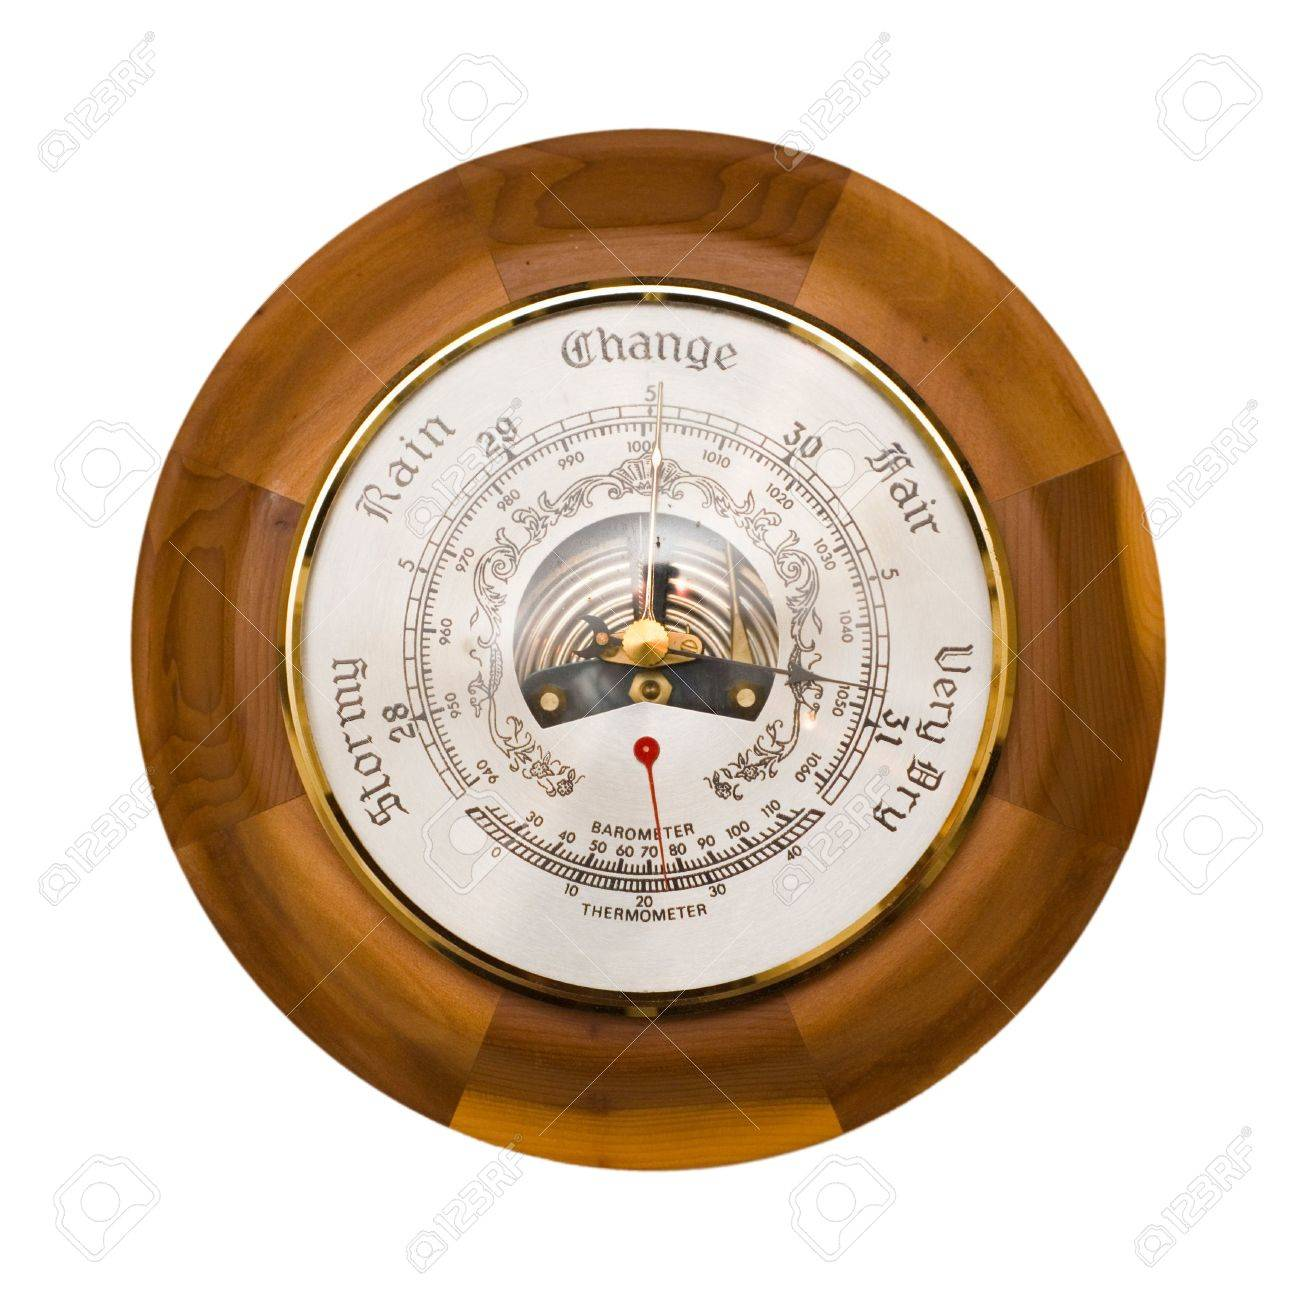 Traditional wooden barometer and thermometer isolated on a white background Stock Photo - 4948292